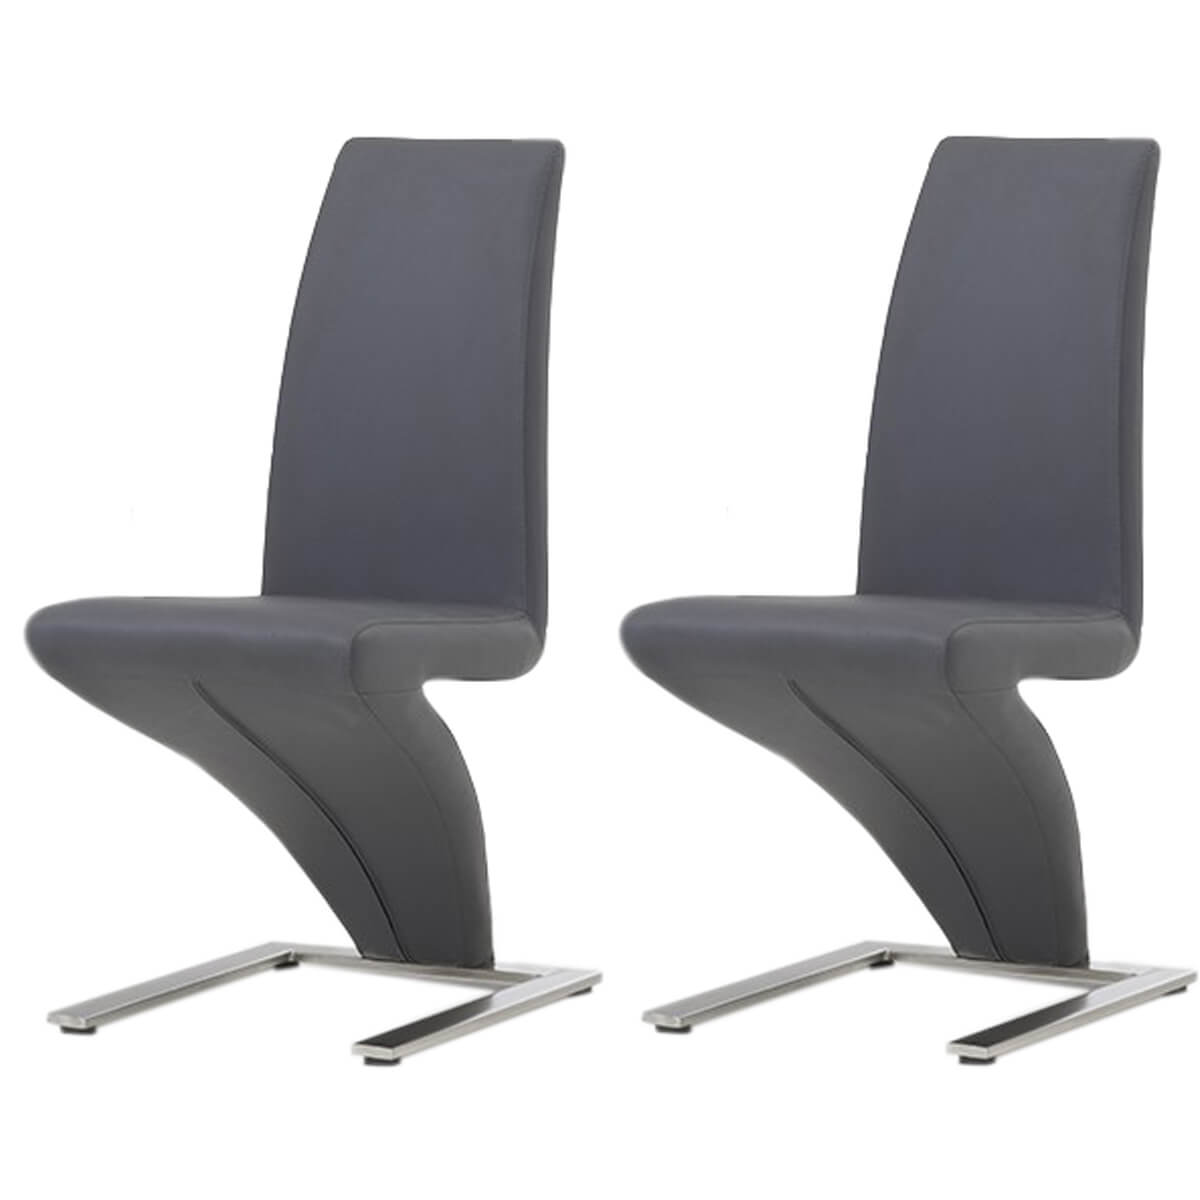 Grey Z Shaped Dining Chairs Faux Leather | Free Delivery | FADS